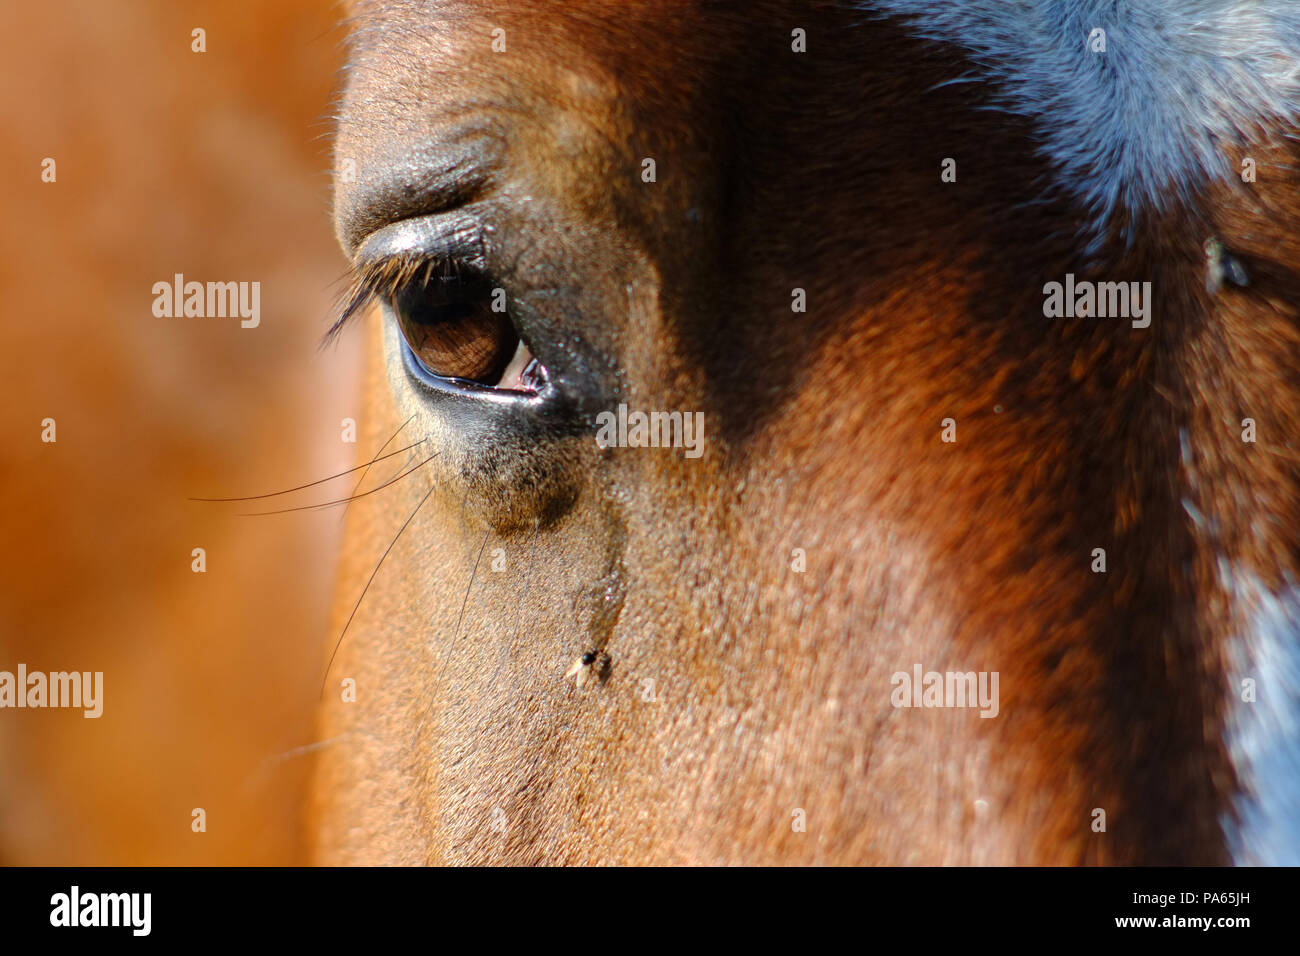 Fly drinking the tears of a horse - Stock Image